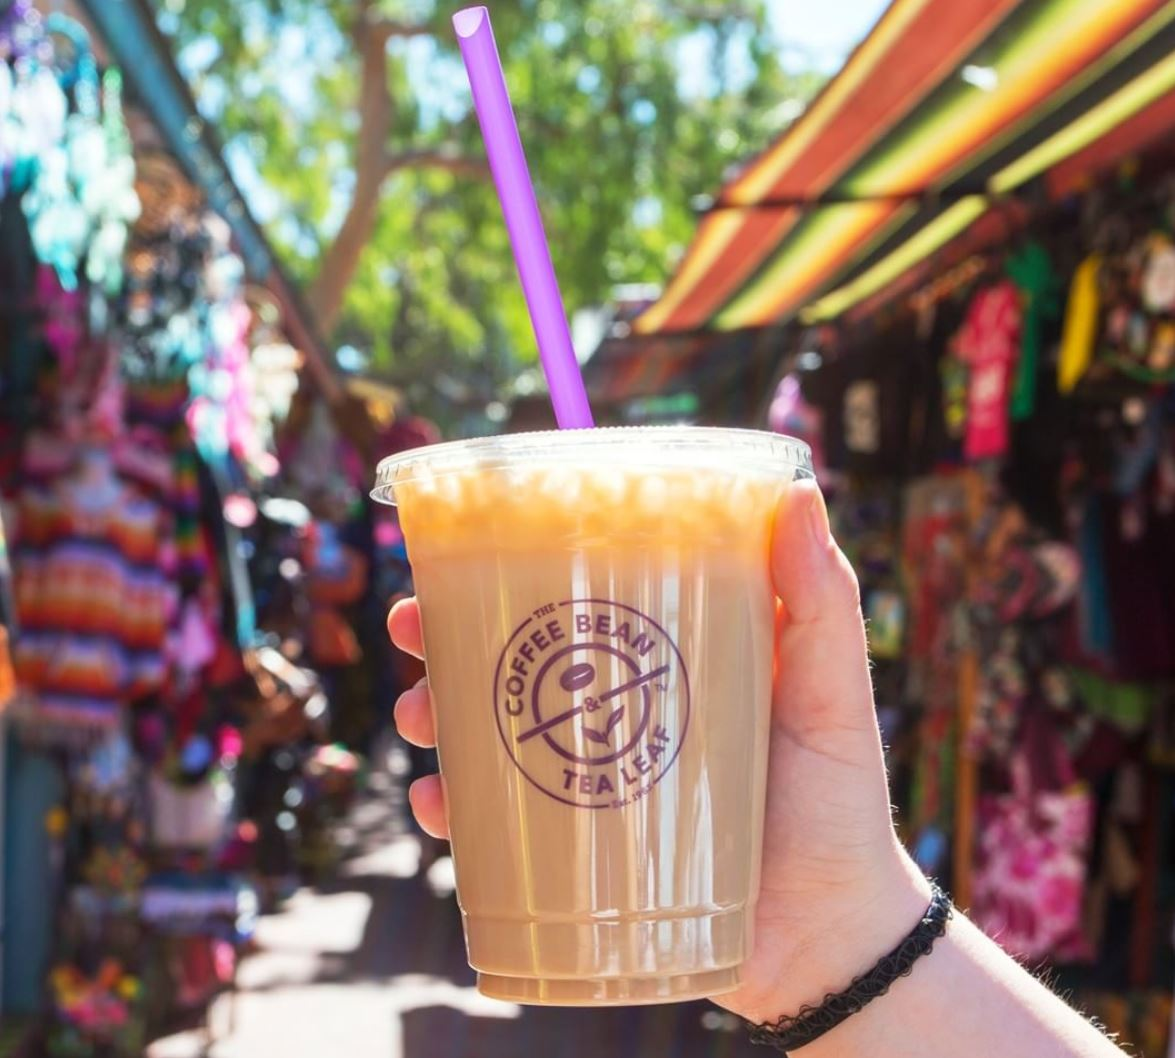 May 4 - 6 | Horchata and Matcha Horchata Lattes Only $1 @ Coffee Bean and Tea Leaf